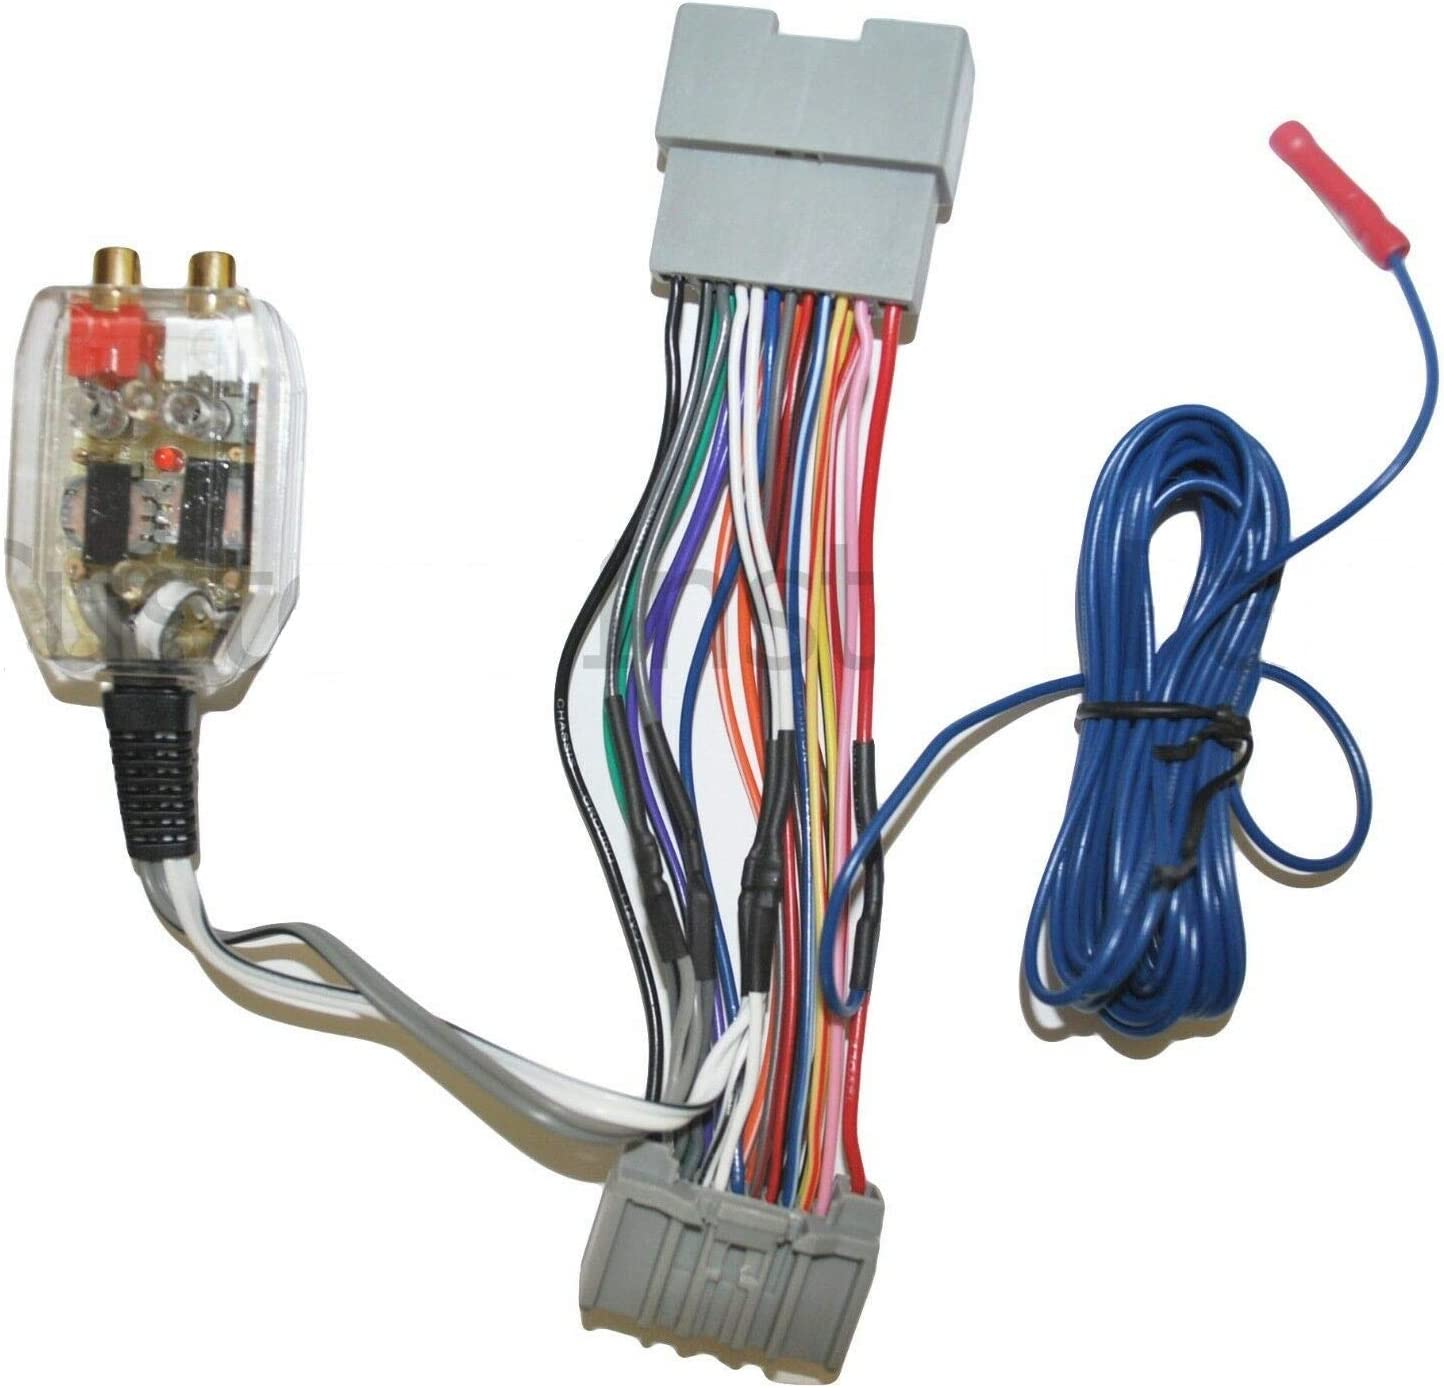 [DIAGRAM_5FD]  Amazon.com: Factory Radio Add A Amp Amplifier Sub Interface Wire Harness  Inline Converter Compatible with Honda: Car Electronics | 2015 Honda Cr V Stereo Wiring |  | Amazon.com